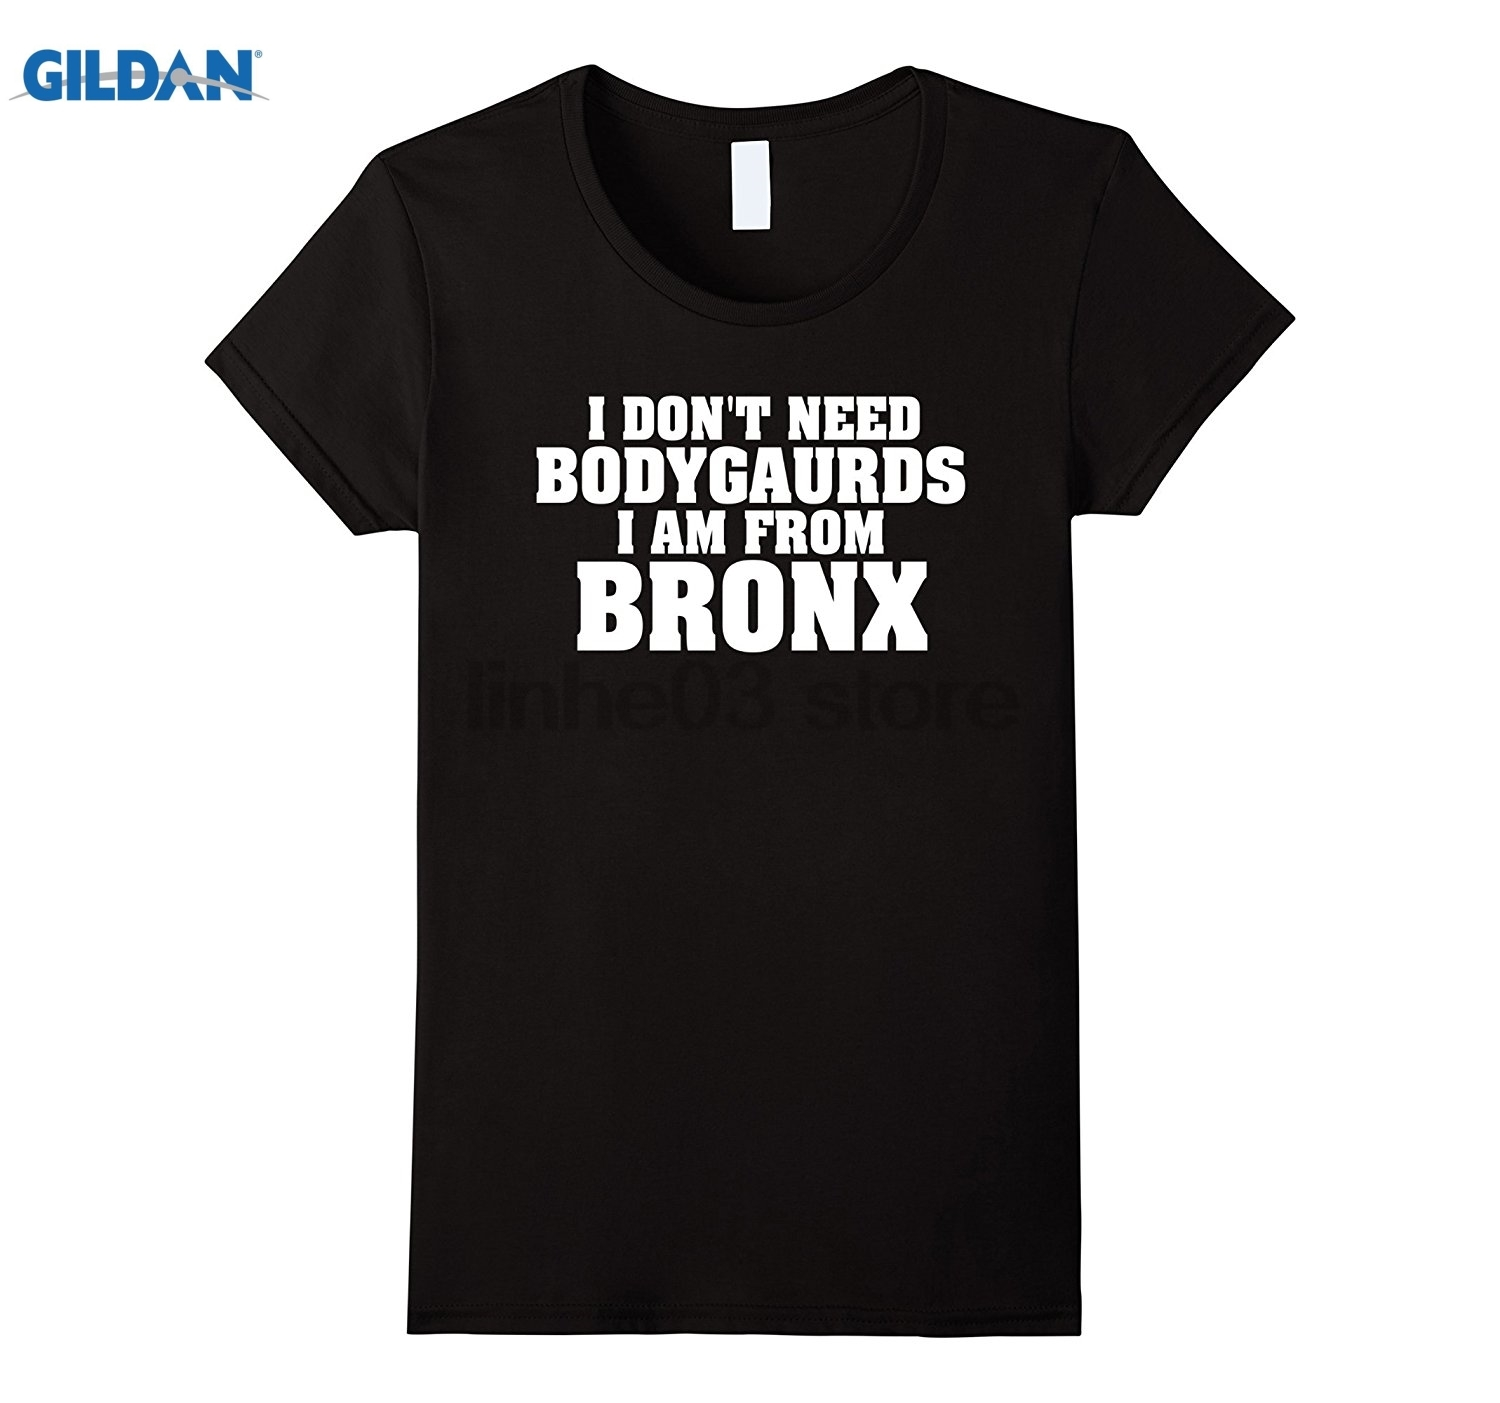 GILDAN I dont need bodyguards i am from bronx sunglasses women T-shirt